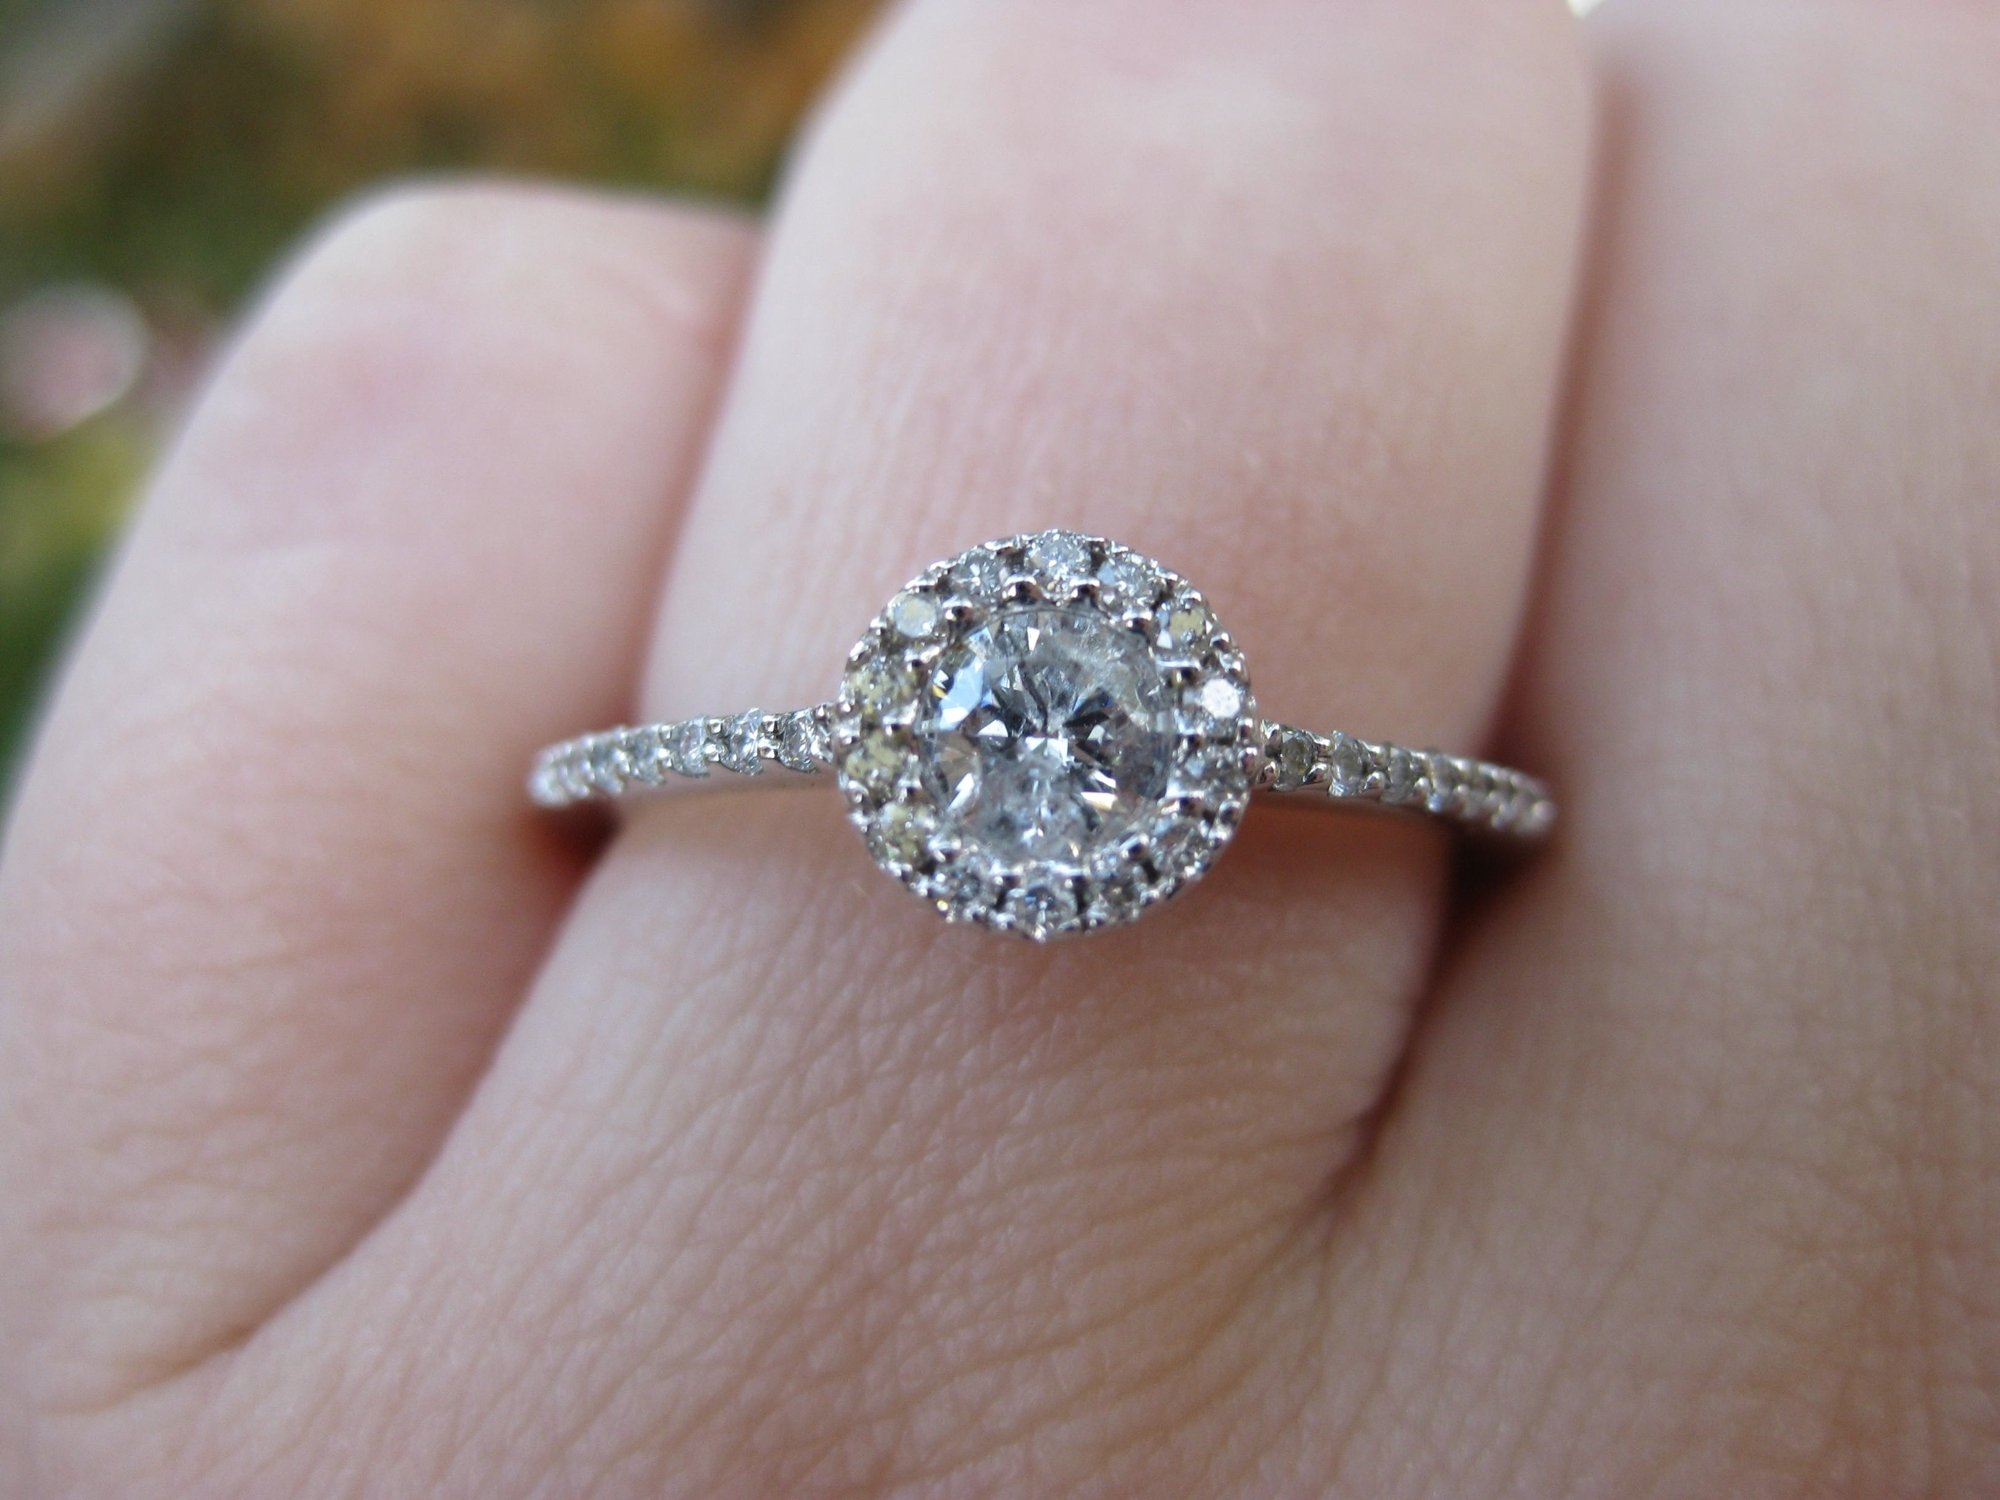 10 Stunning Non Diamond Engagement Ring Ideas 3 reasons not to get an engagement ring fun unique wedding ideas 2020